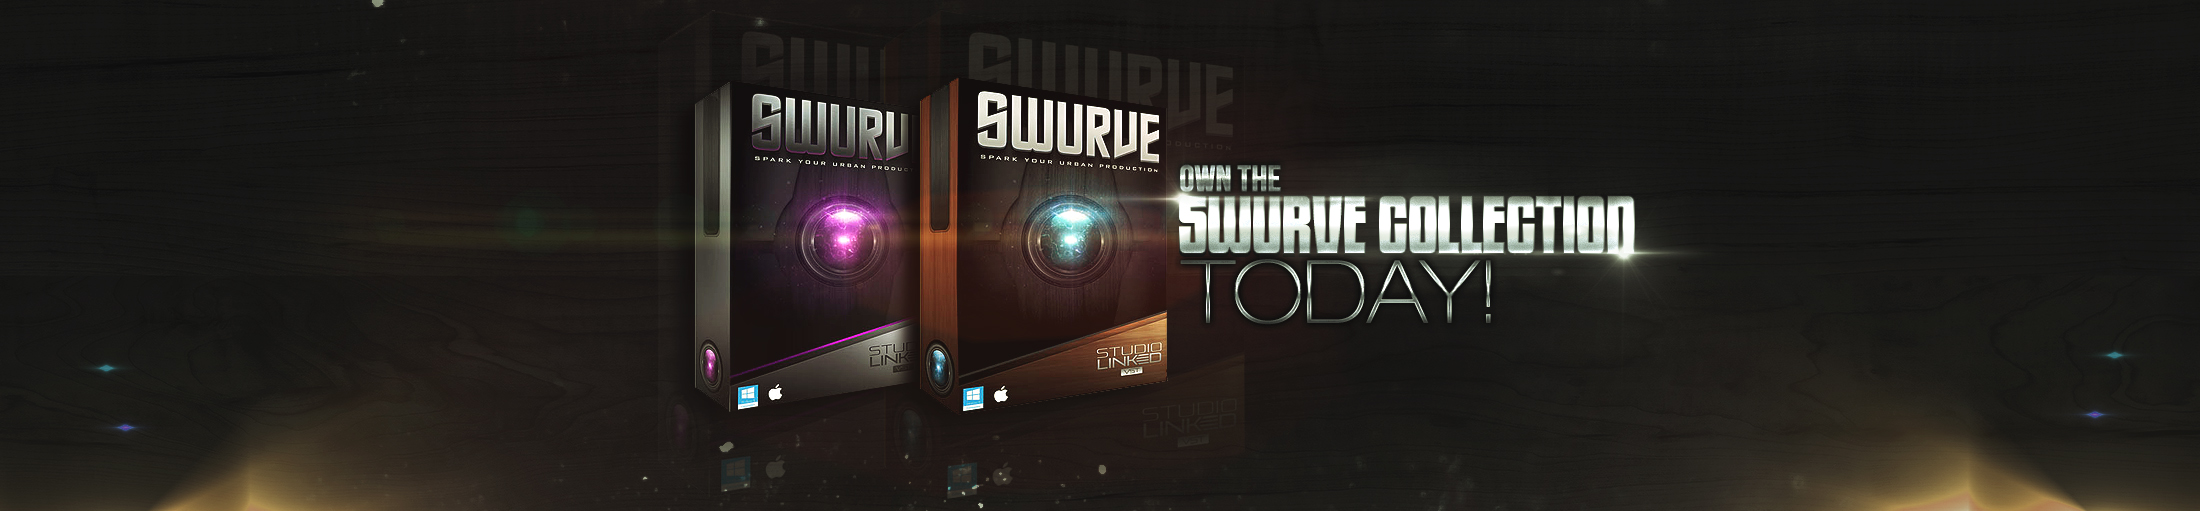 Swurve-Collection-changes-Slide